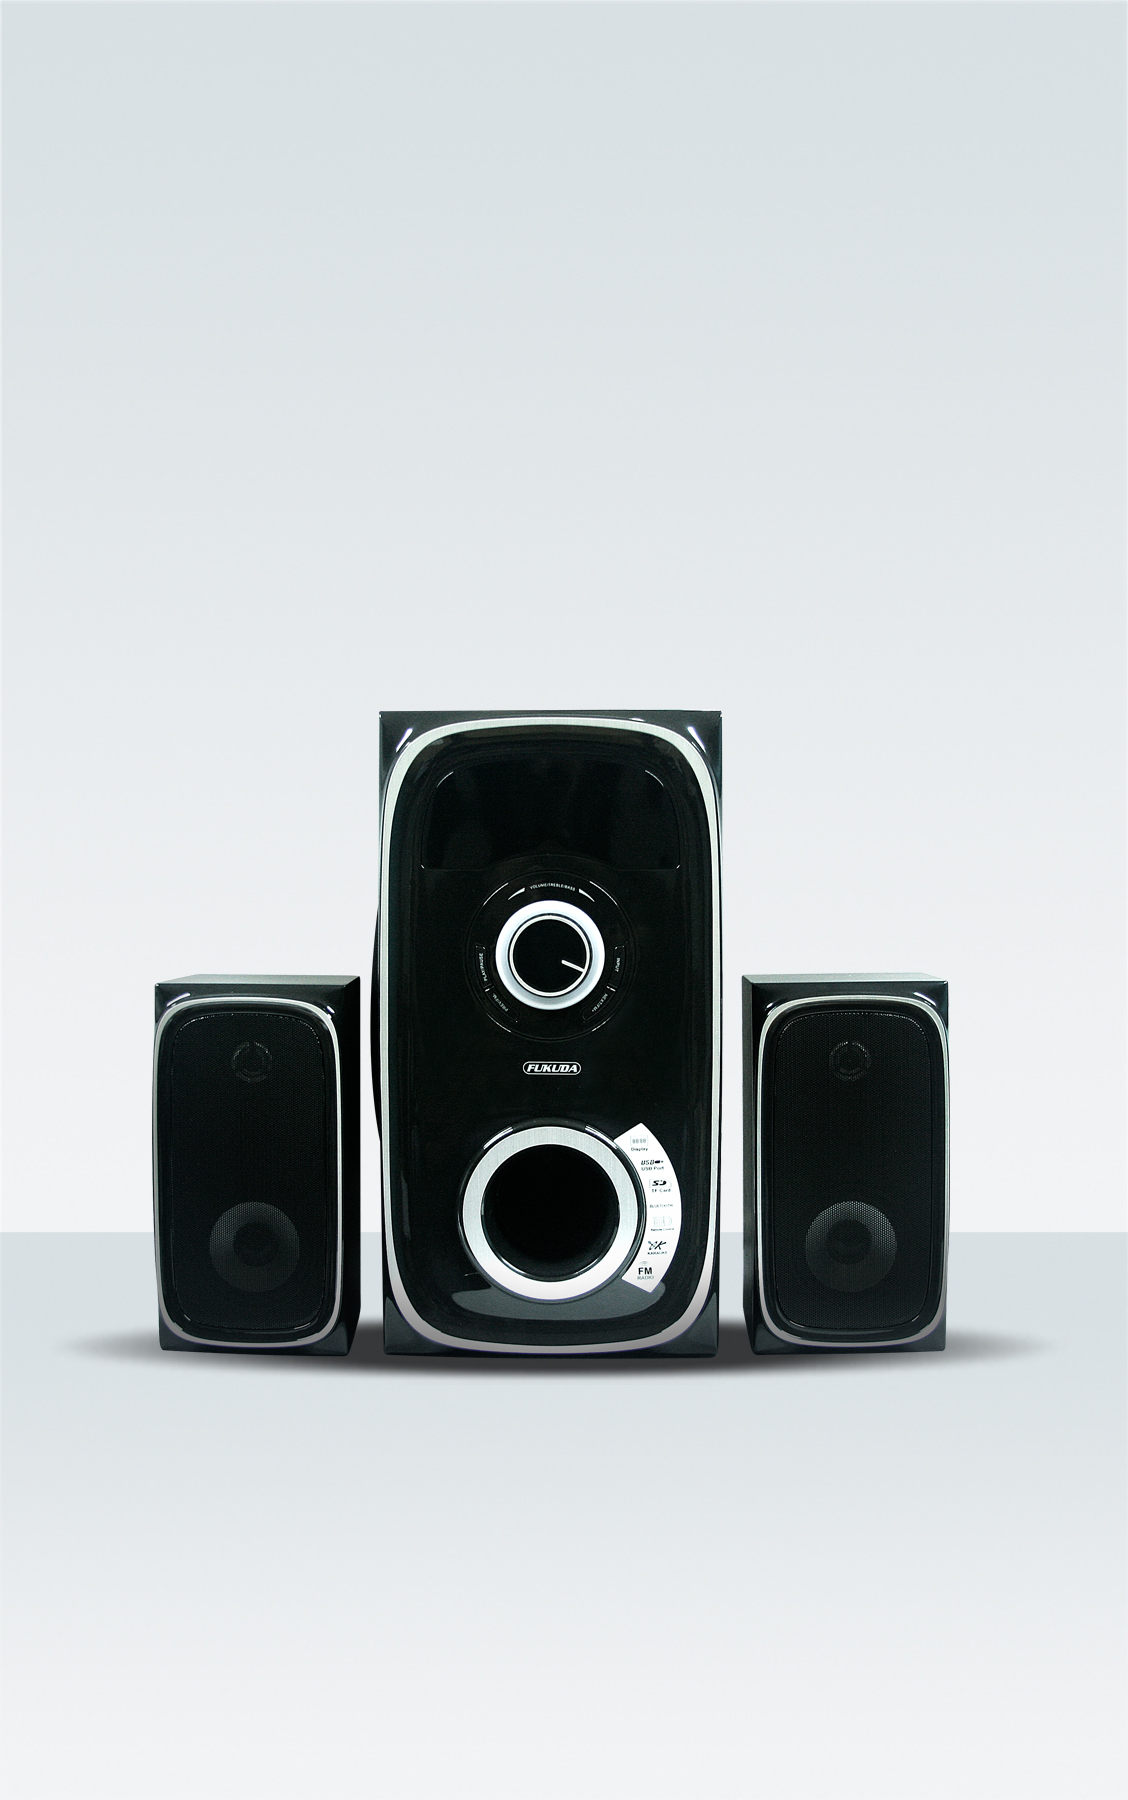 2.1 CH HOME THEATER SPEAKER 80W RMS